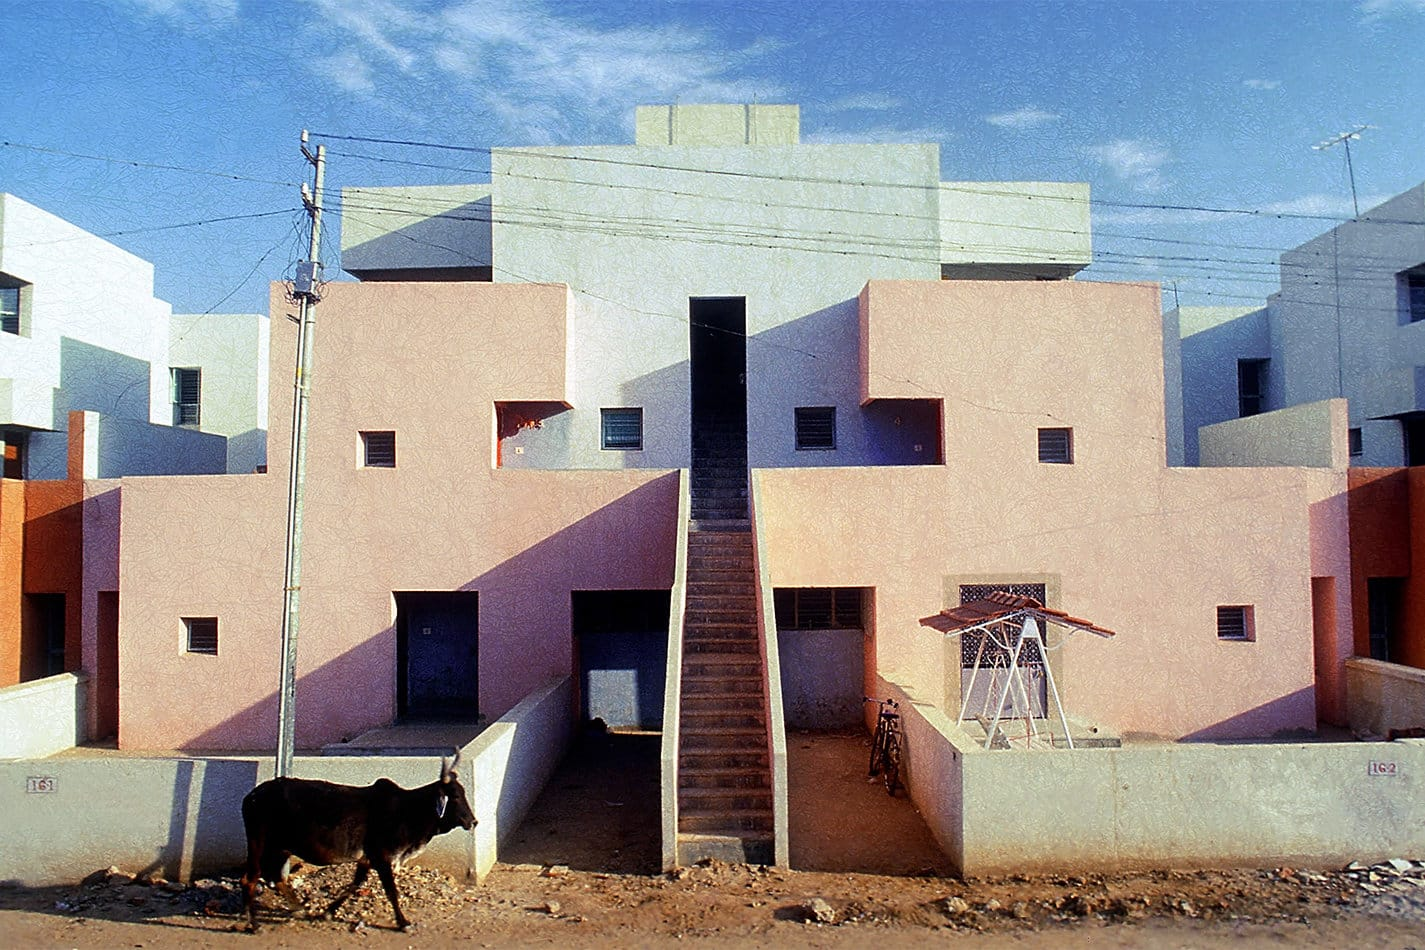 Balkrishna Doshi created the Life Insurance Corporation Housing building in Ahmedabad, India, in 1973. Courtesy of VSF